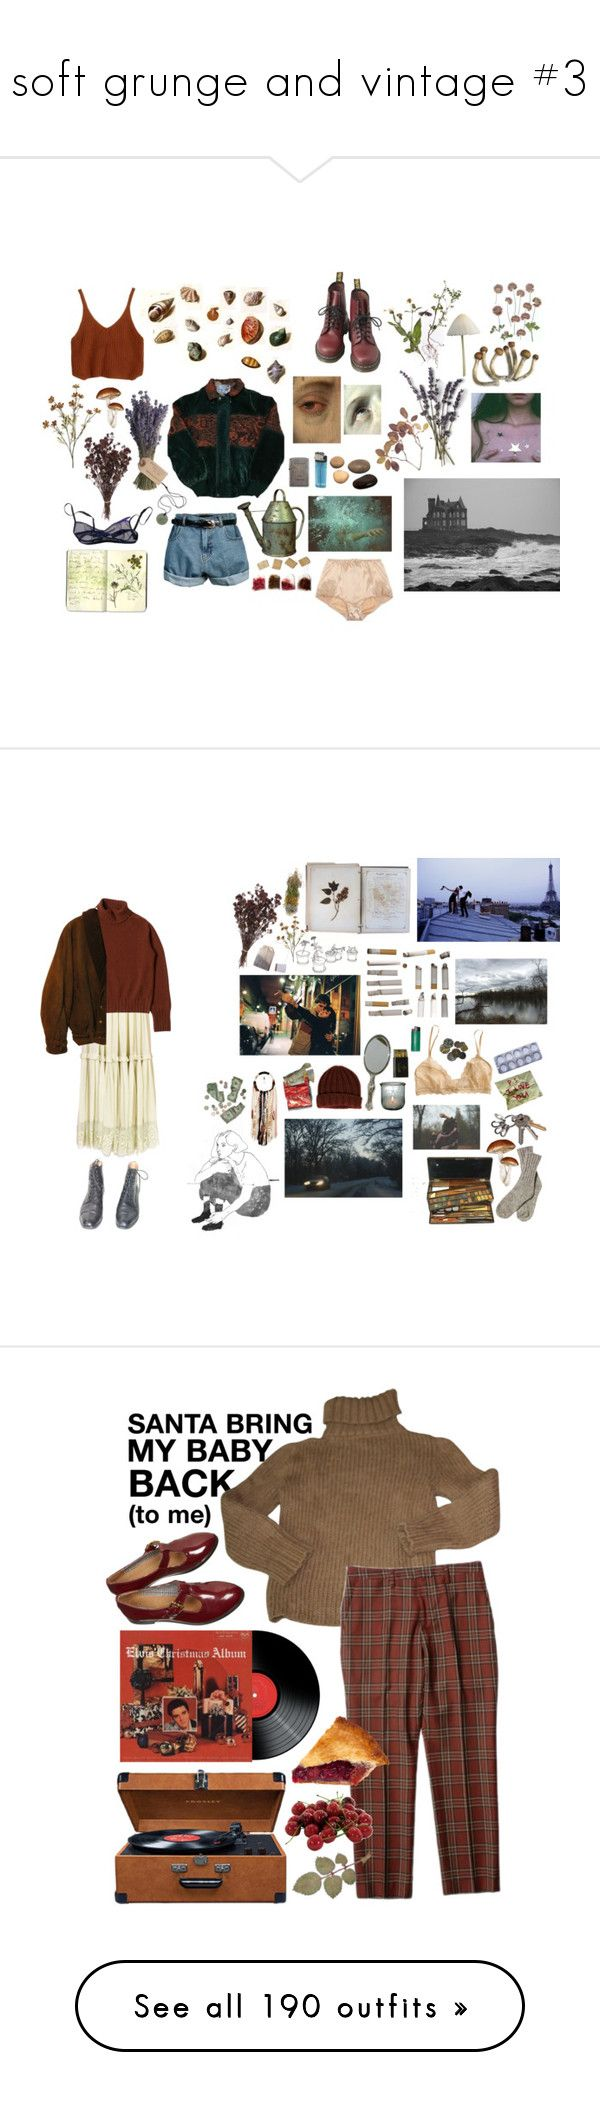 """""""soft grunge and vintage #3"""" by dreamingsock ❤ liked on Polyvore featuring PLANT, Dolce&Gabbana, Olive, Zippo, Retrò, Moleskine, The Lake & Stars, Lanvin, Zoot and INDIE HAIR"""